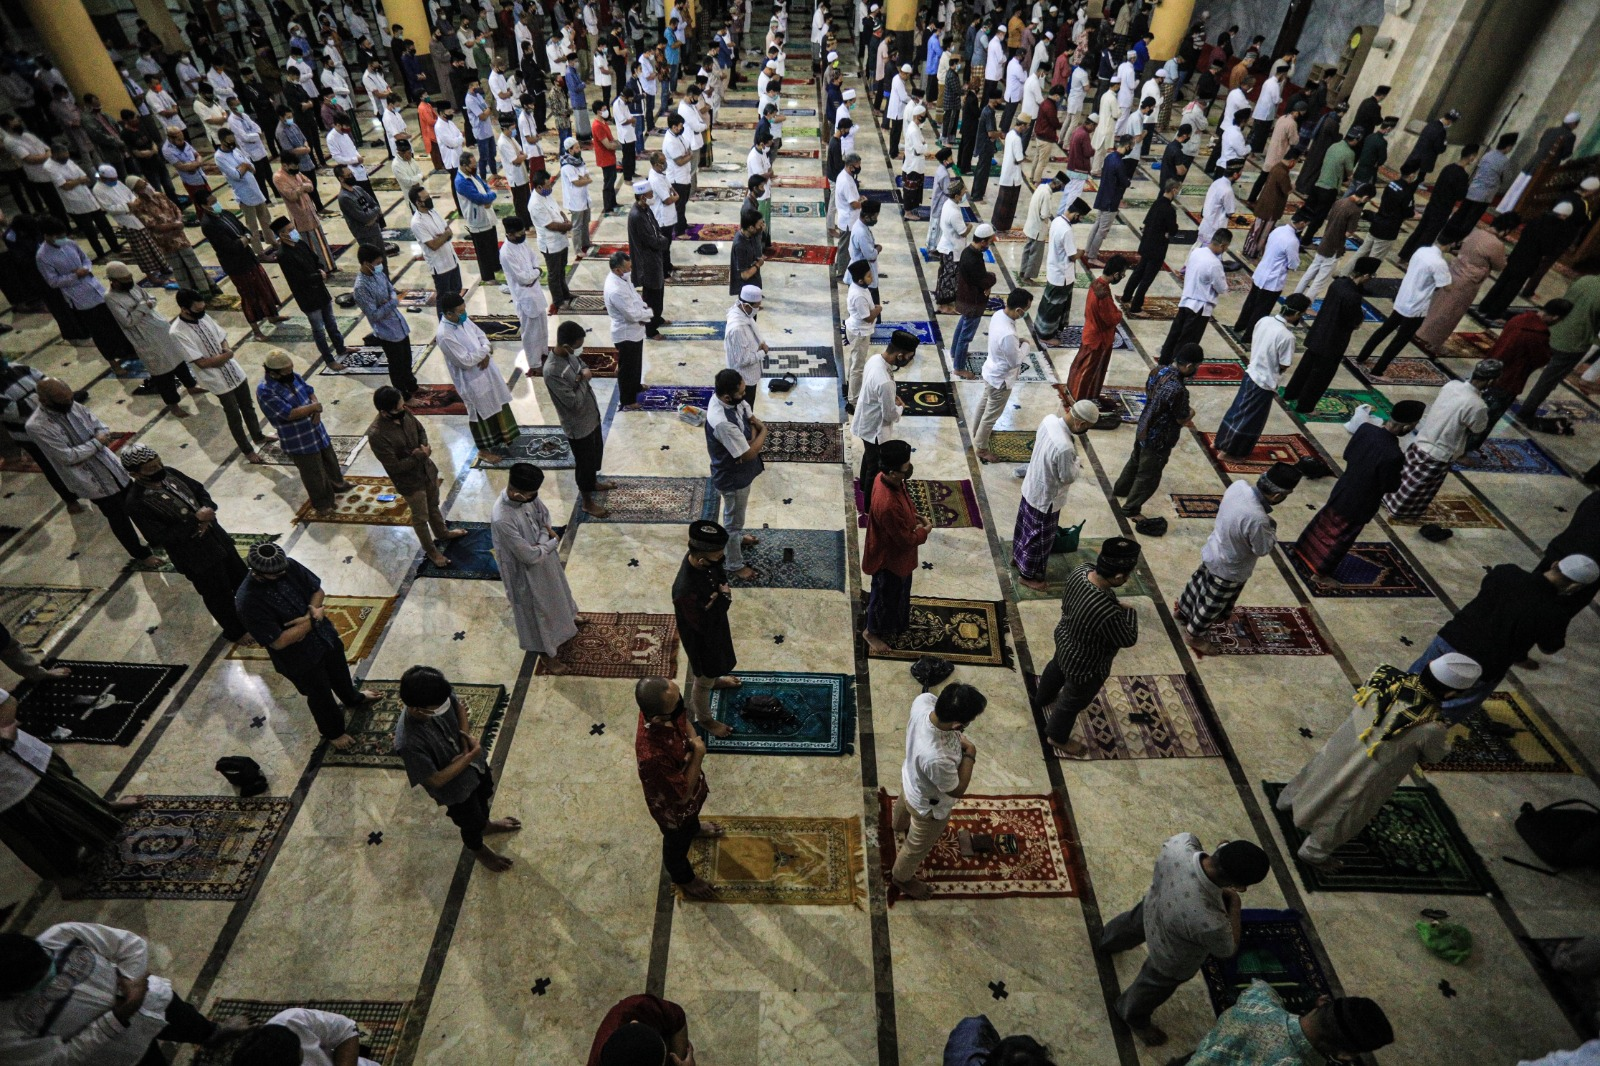 the Ruling of Reciting Al-Fatihah behind the Imam in a Loud Prayer